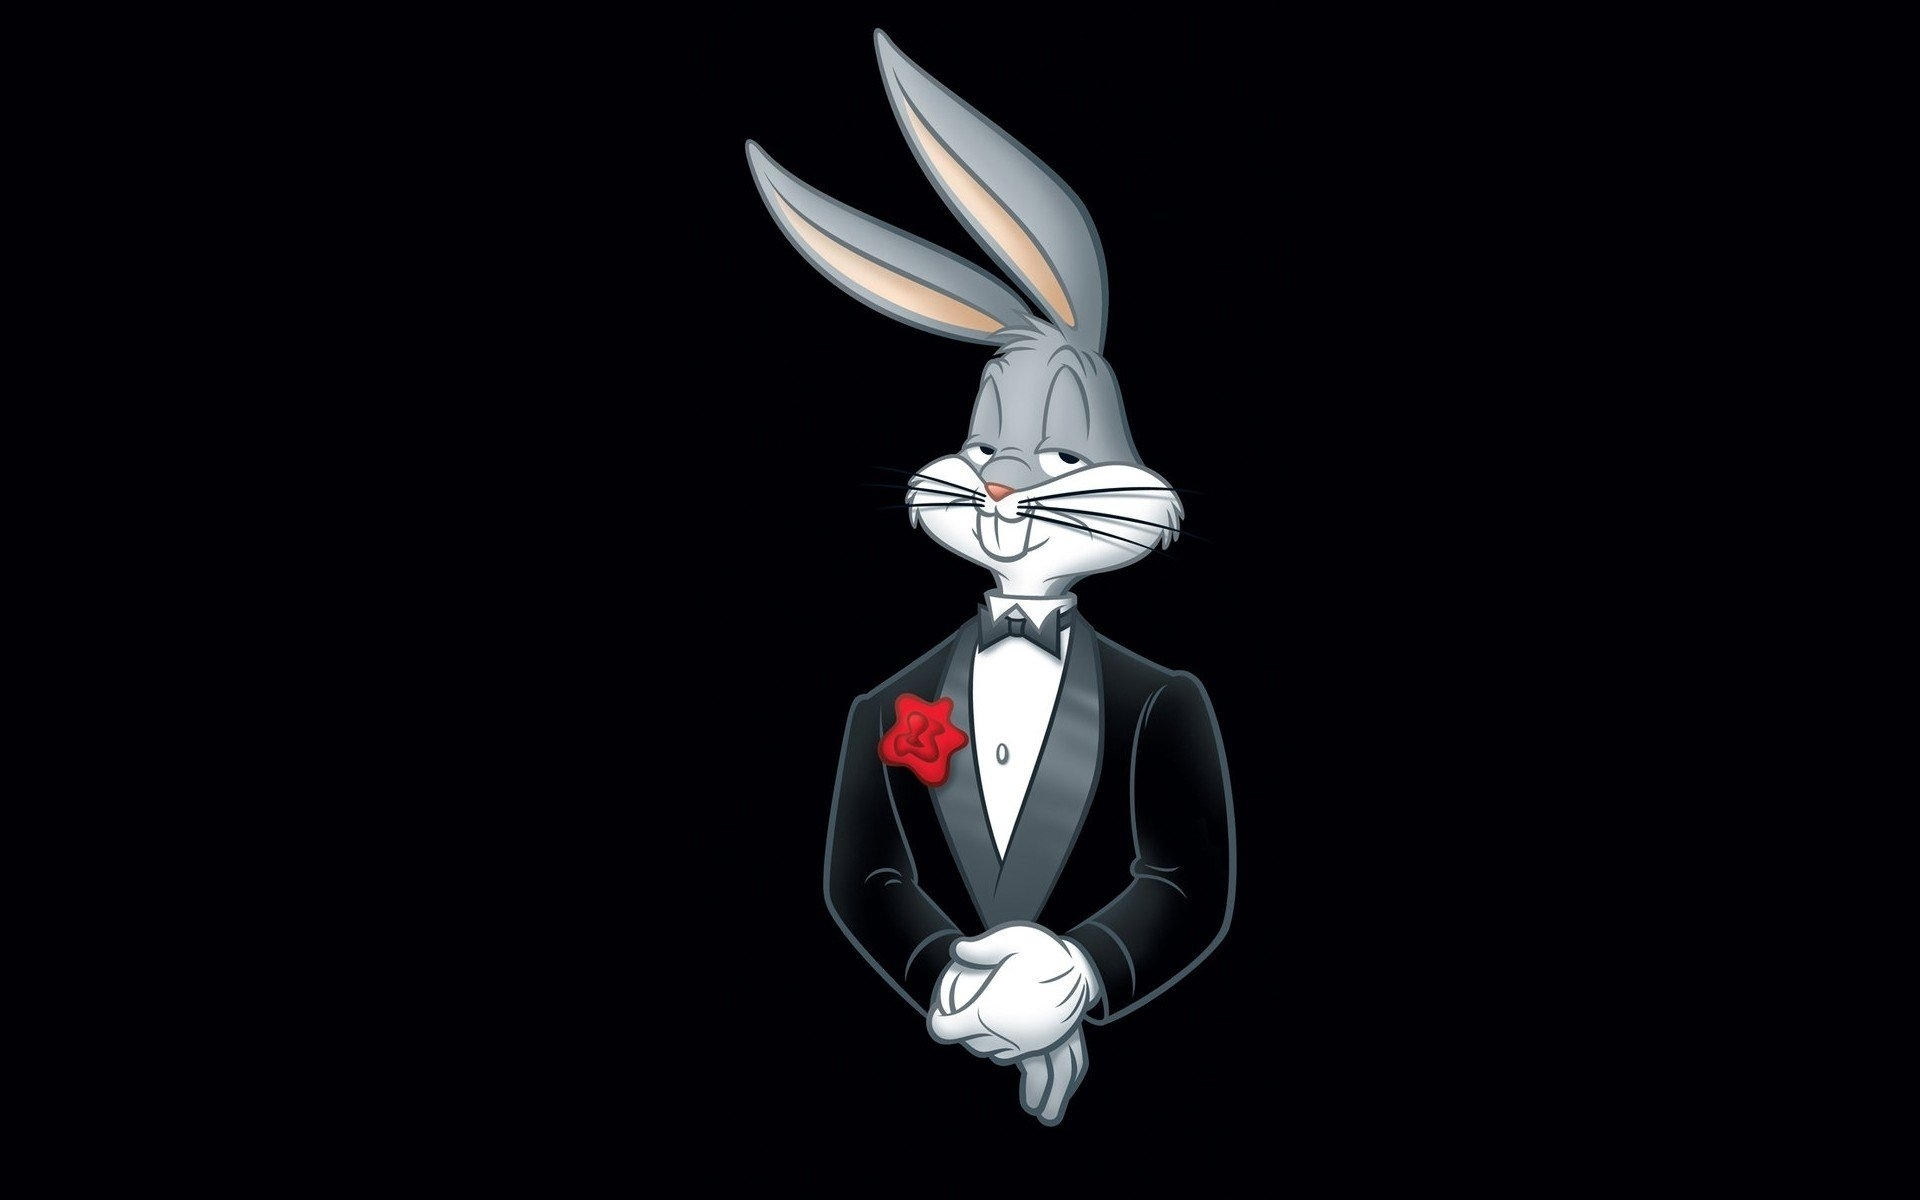 10 Best Bugs Bunny Wall Paper FULL HD 1920×1080 For PC Background